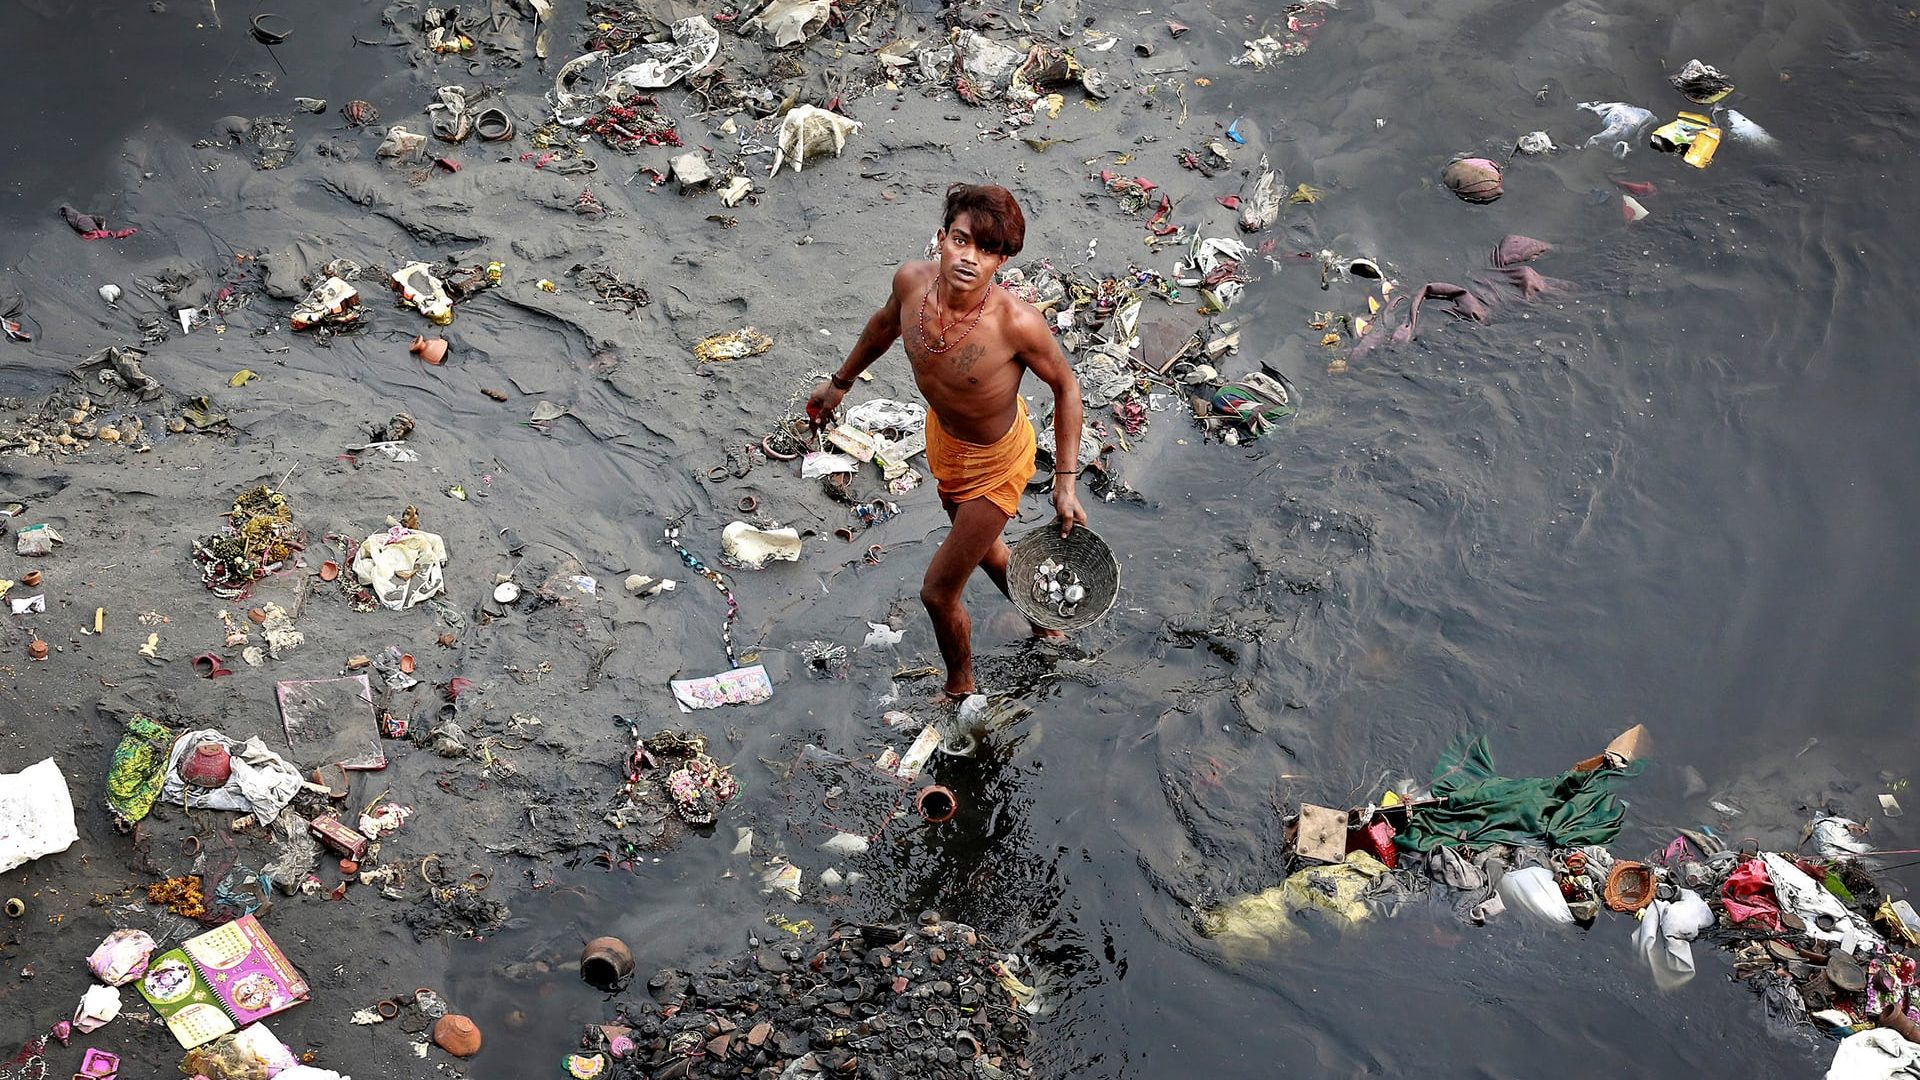 New Delhi, India A man sifts through rubbish in the Yamuna, India's most polluted river Photograph: Cathal Mcnaughton/Reuters